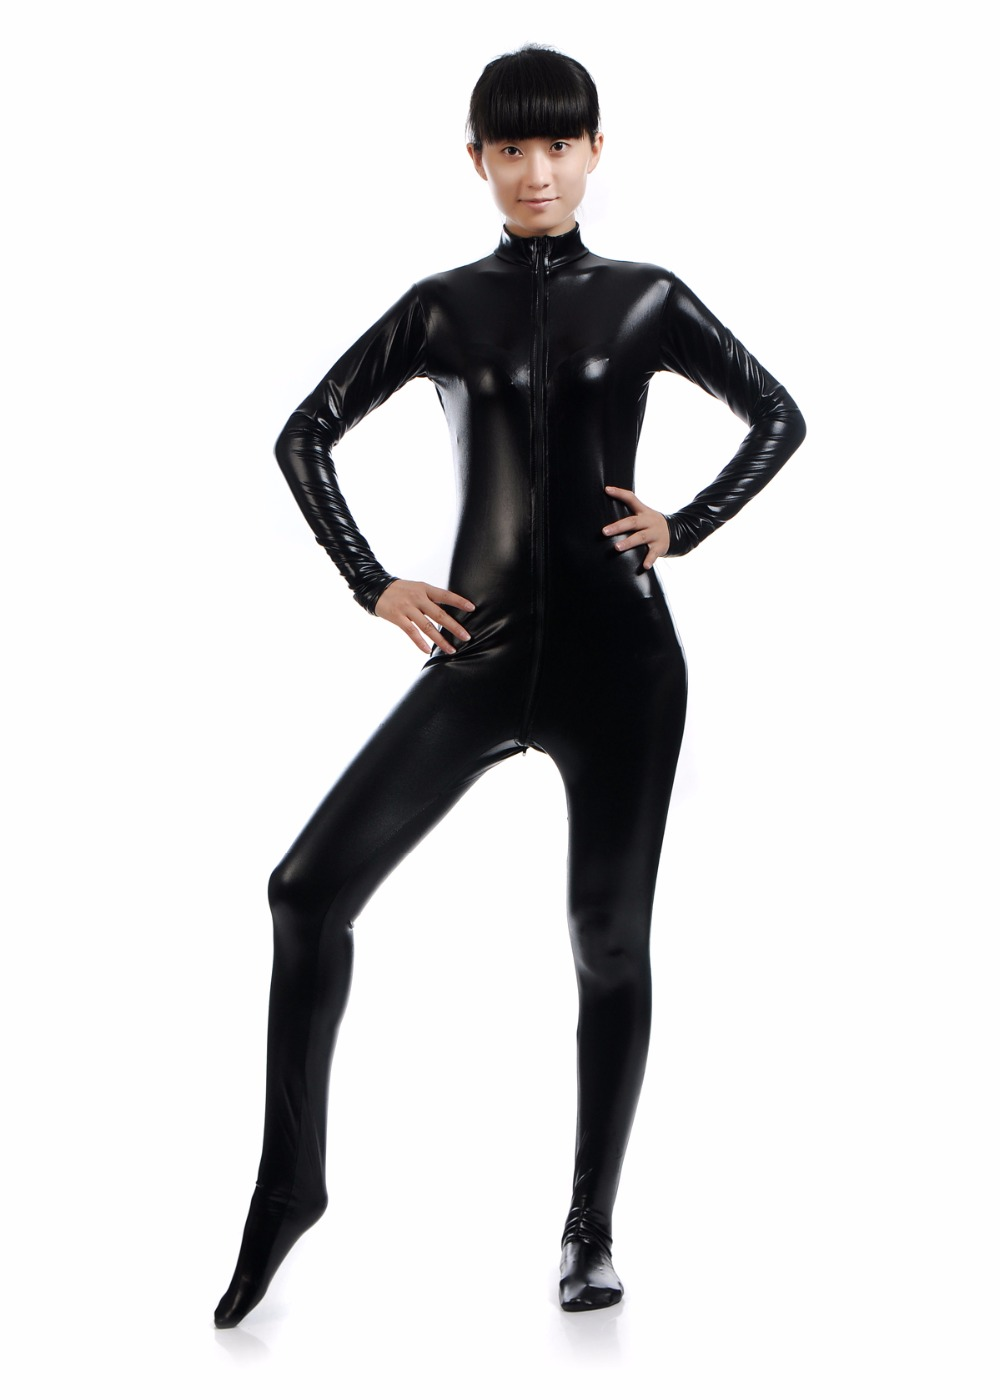 Women's Long Sleeve Black Zentai Suit with Crotch Zipper Footed Turtleneck Unitard Lycra Catsuits Full Zentai Bodysuits Hoodless